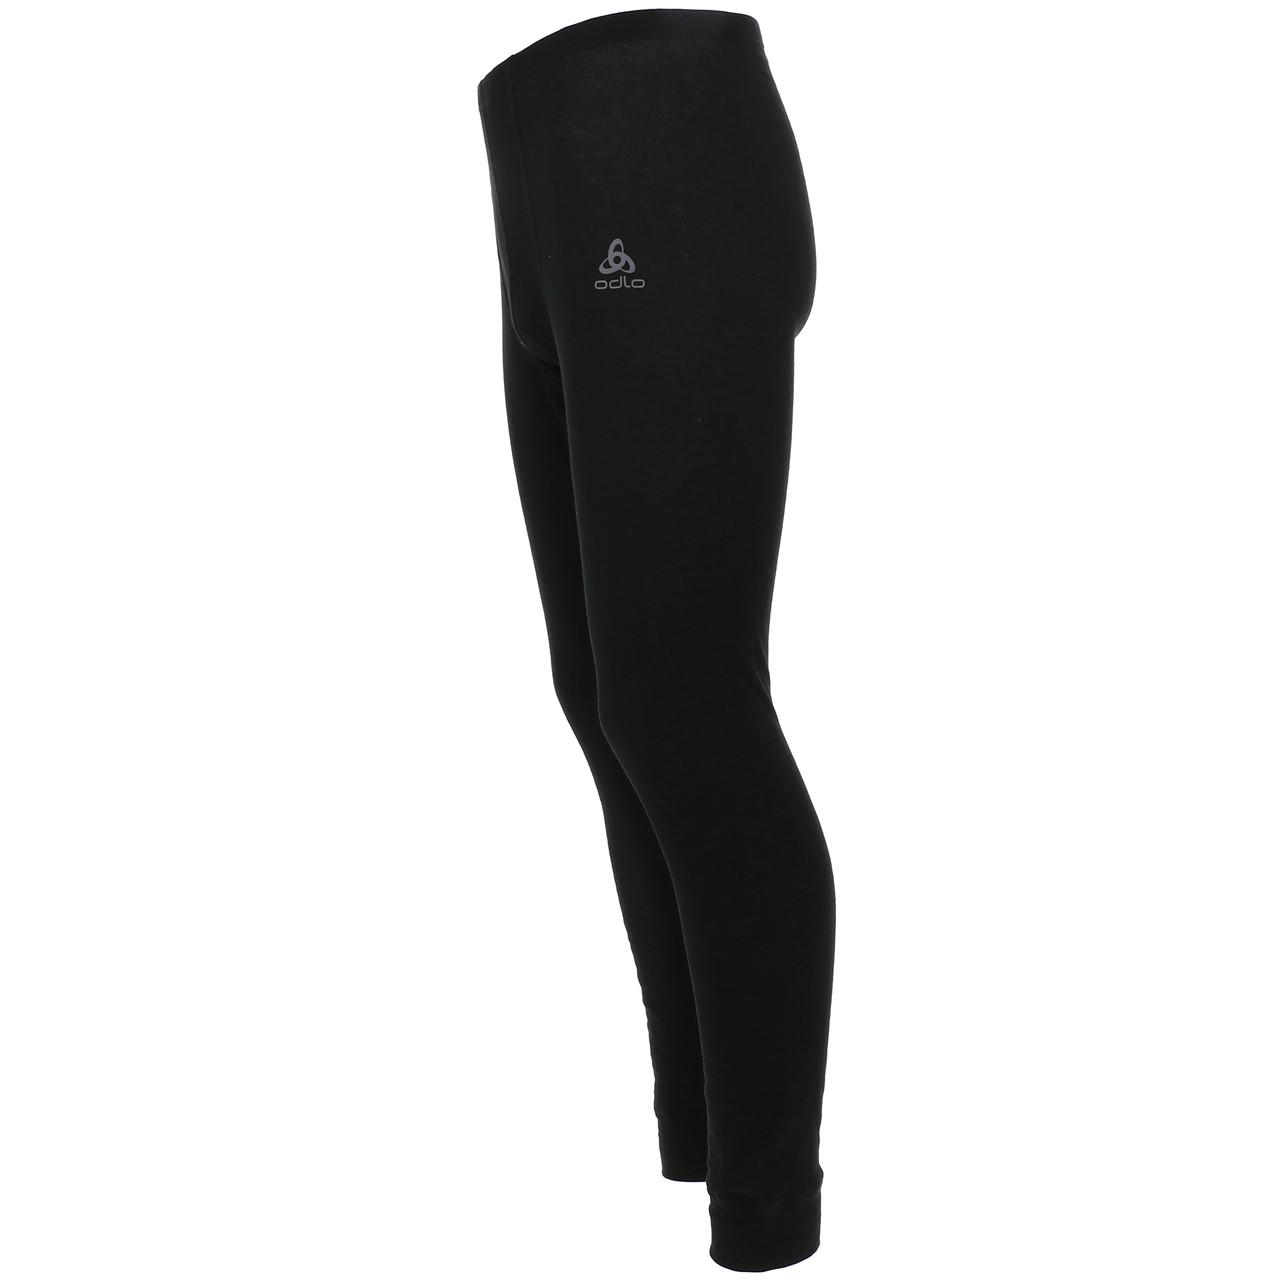 Tights-Thermal-Hot-Winter-Odlo-Warm-Black-Tights-Black-85327-New thumbnail 3